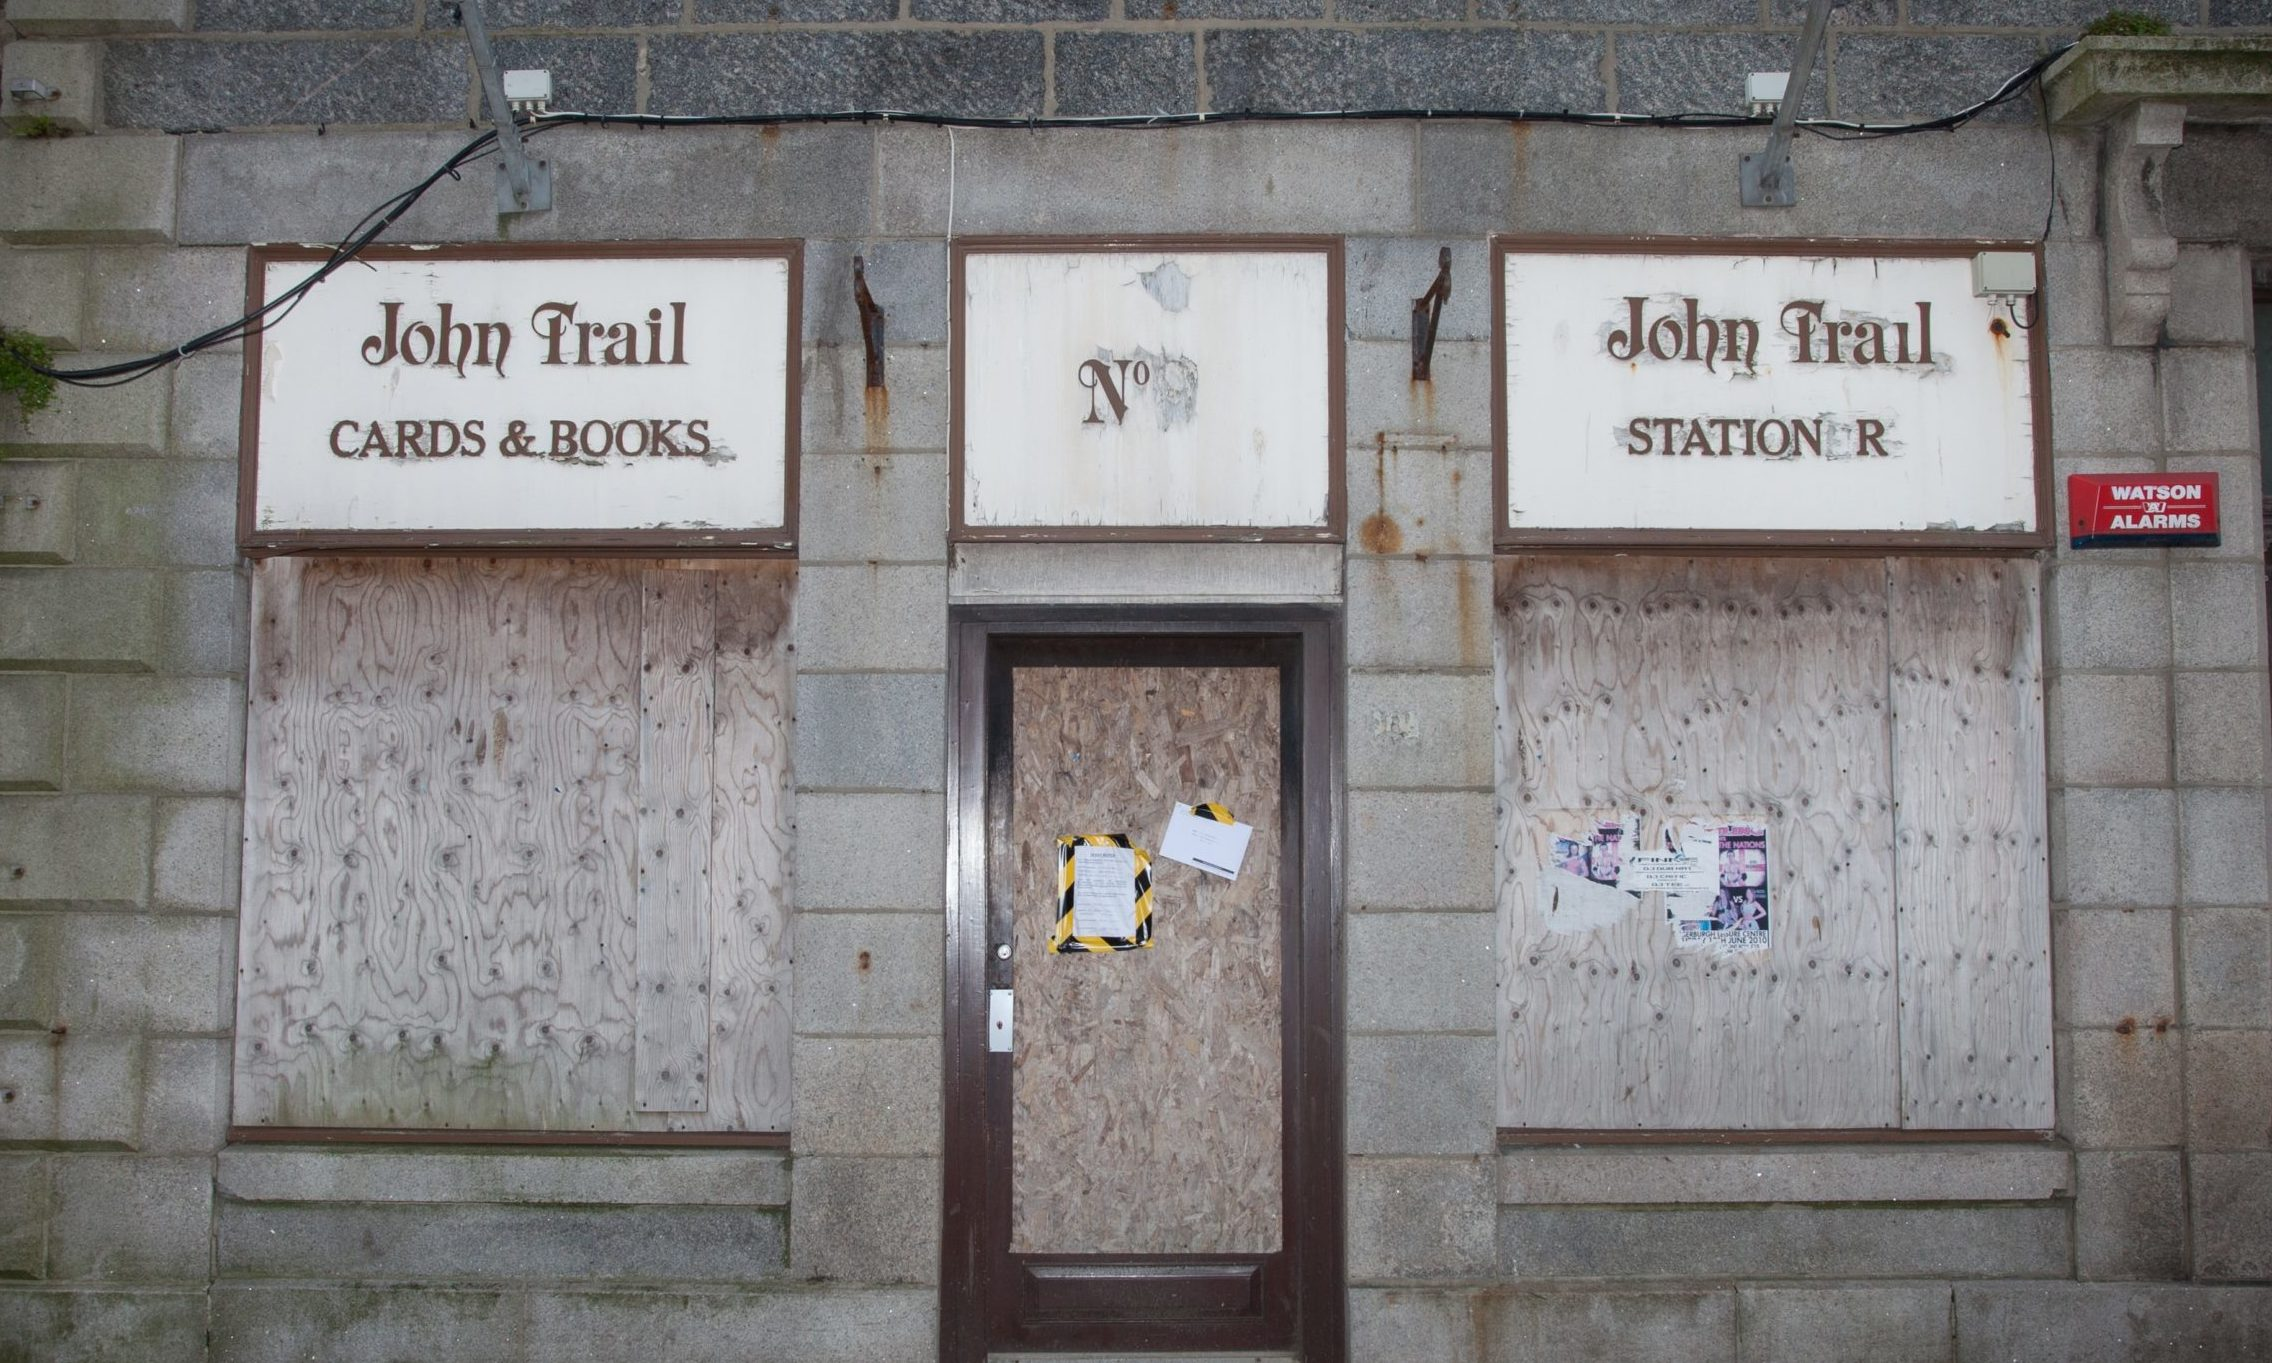 John Trail Cards and books shop in Fraserburgh